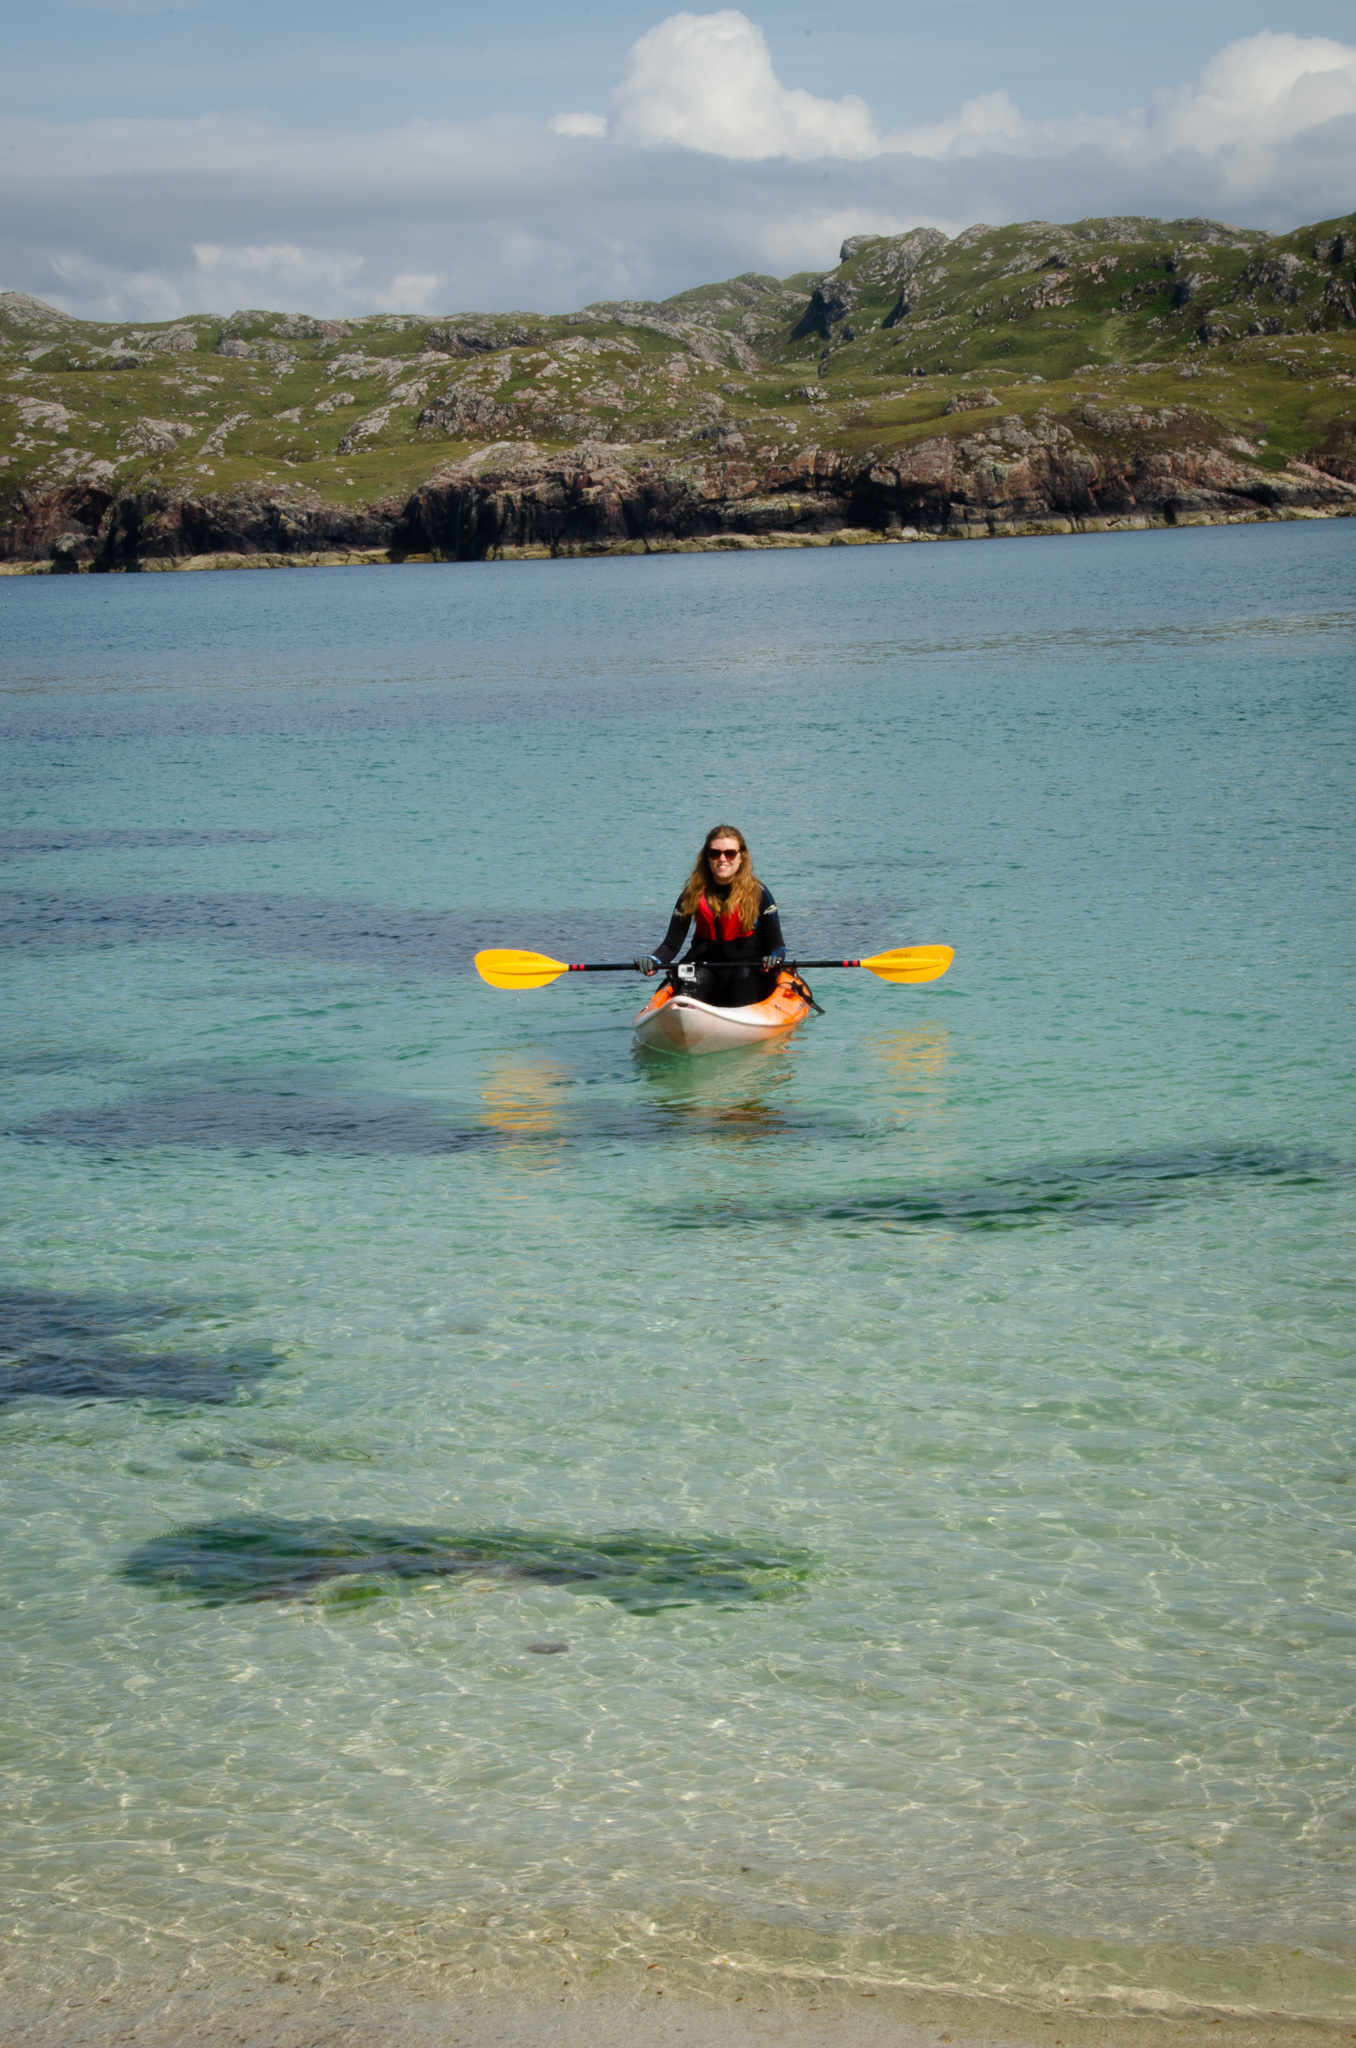 Arriving at Handa island by kayak- the water was clear as could be.